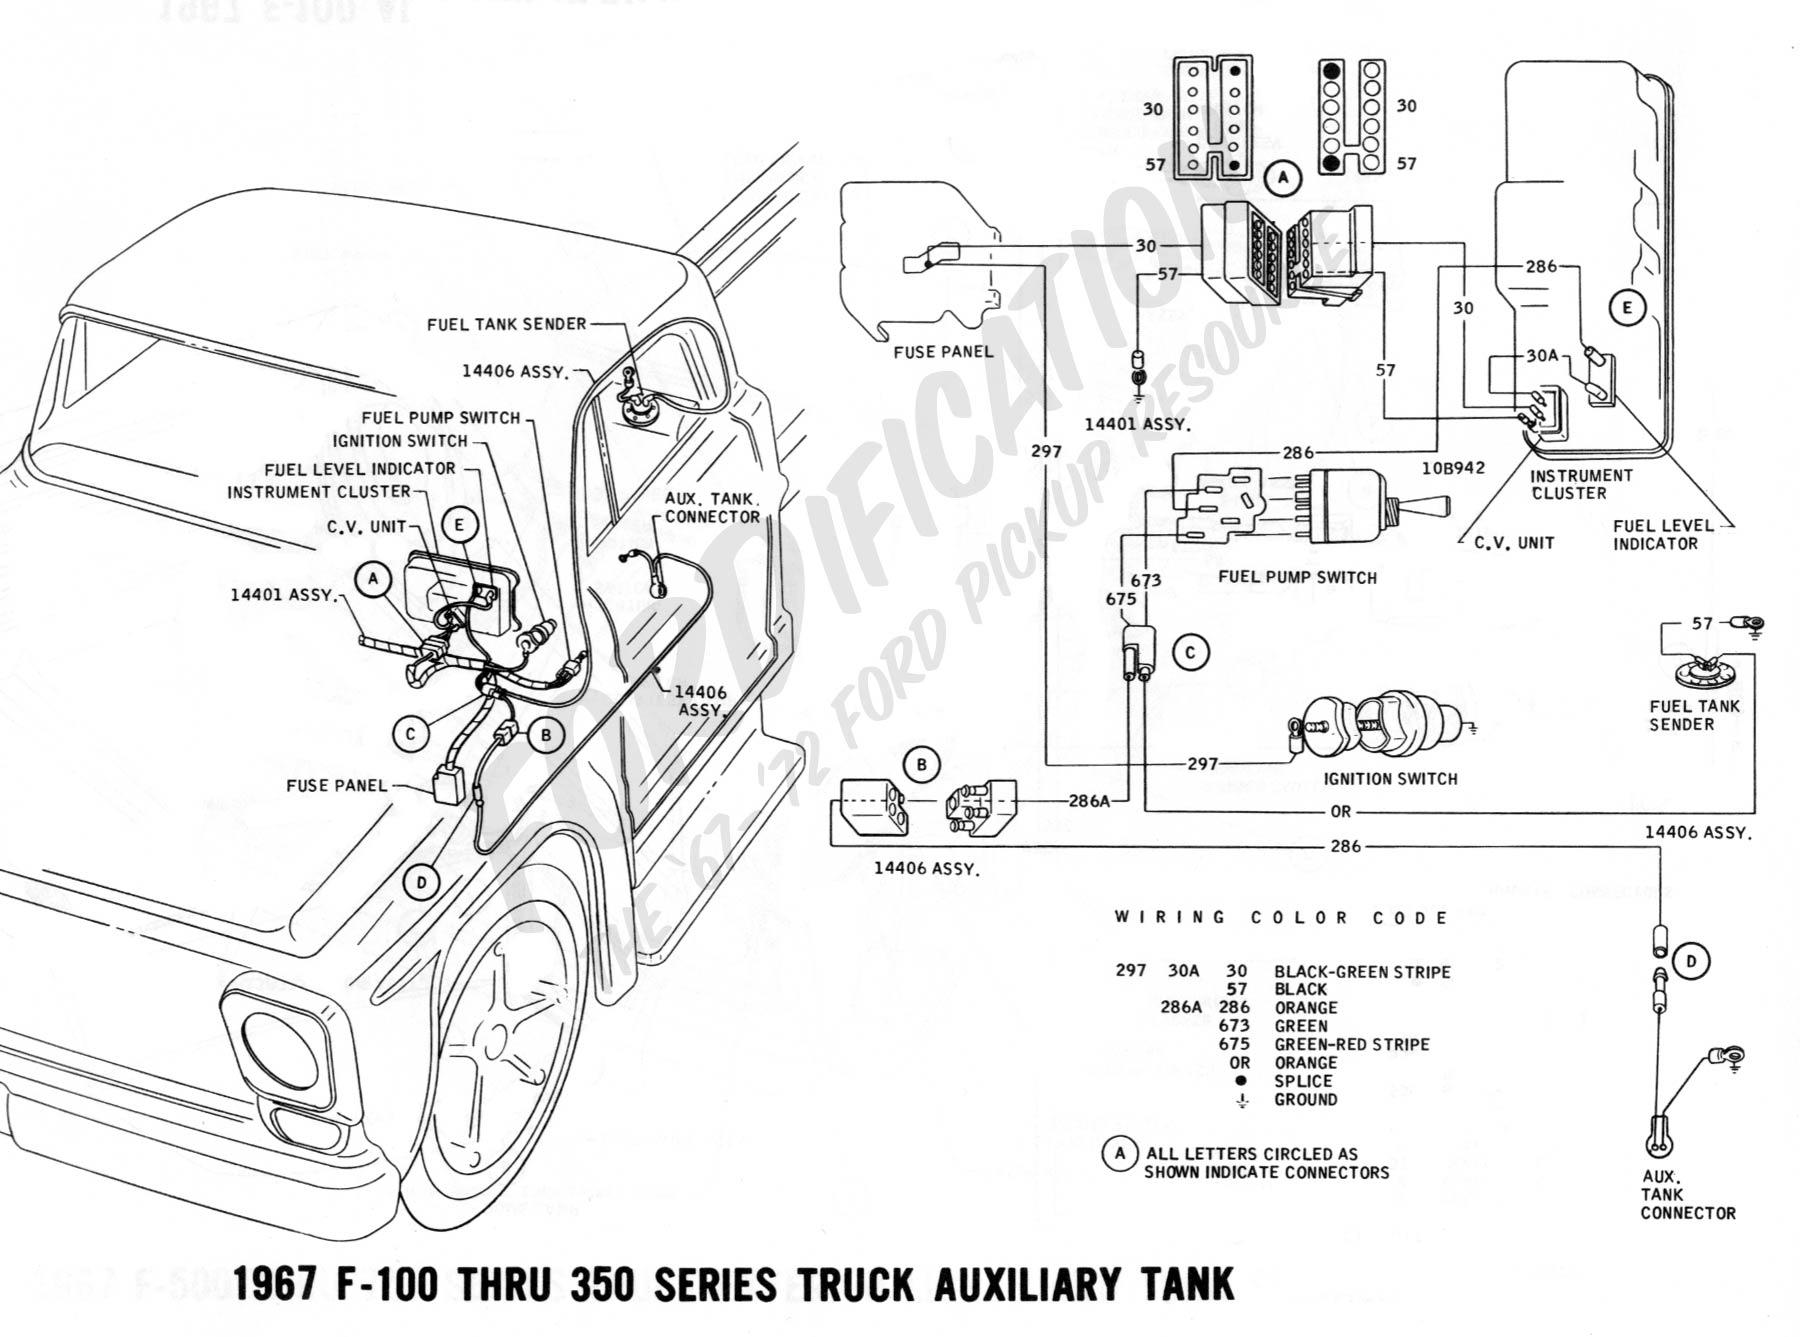 Chevrolet S 10 2 5 1989 Specs And Images moreover 1955 Cadillac Wiring Schematic Diagram Instructions additionally Schematics h furthermore Vacuum furthermore P 0900c152800b11d8. on 1994 chevy corvette engine